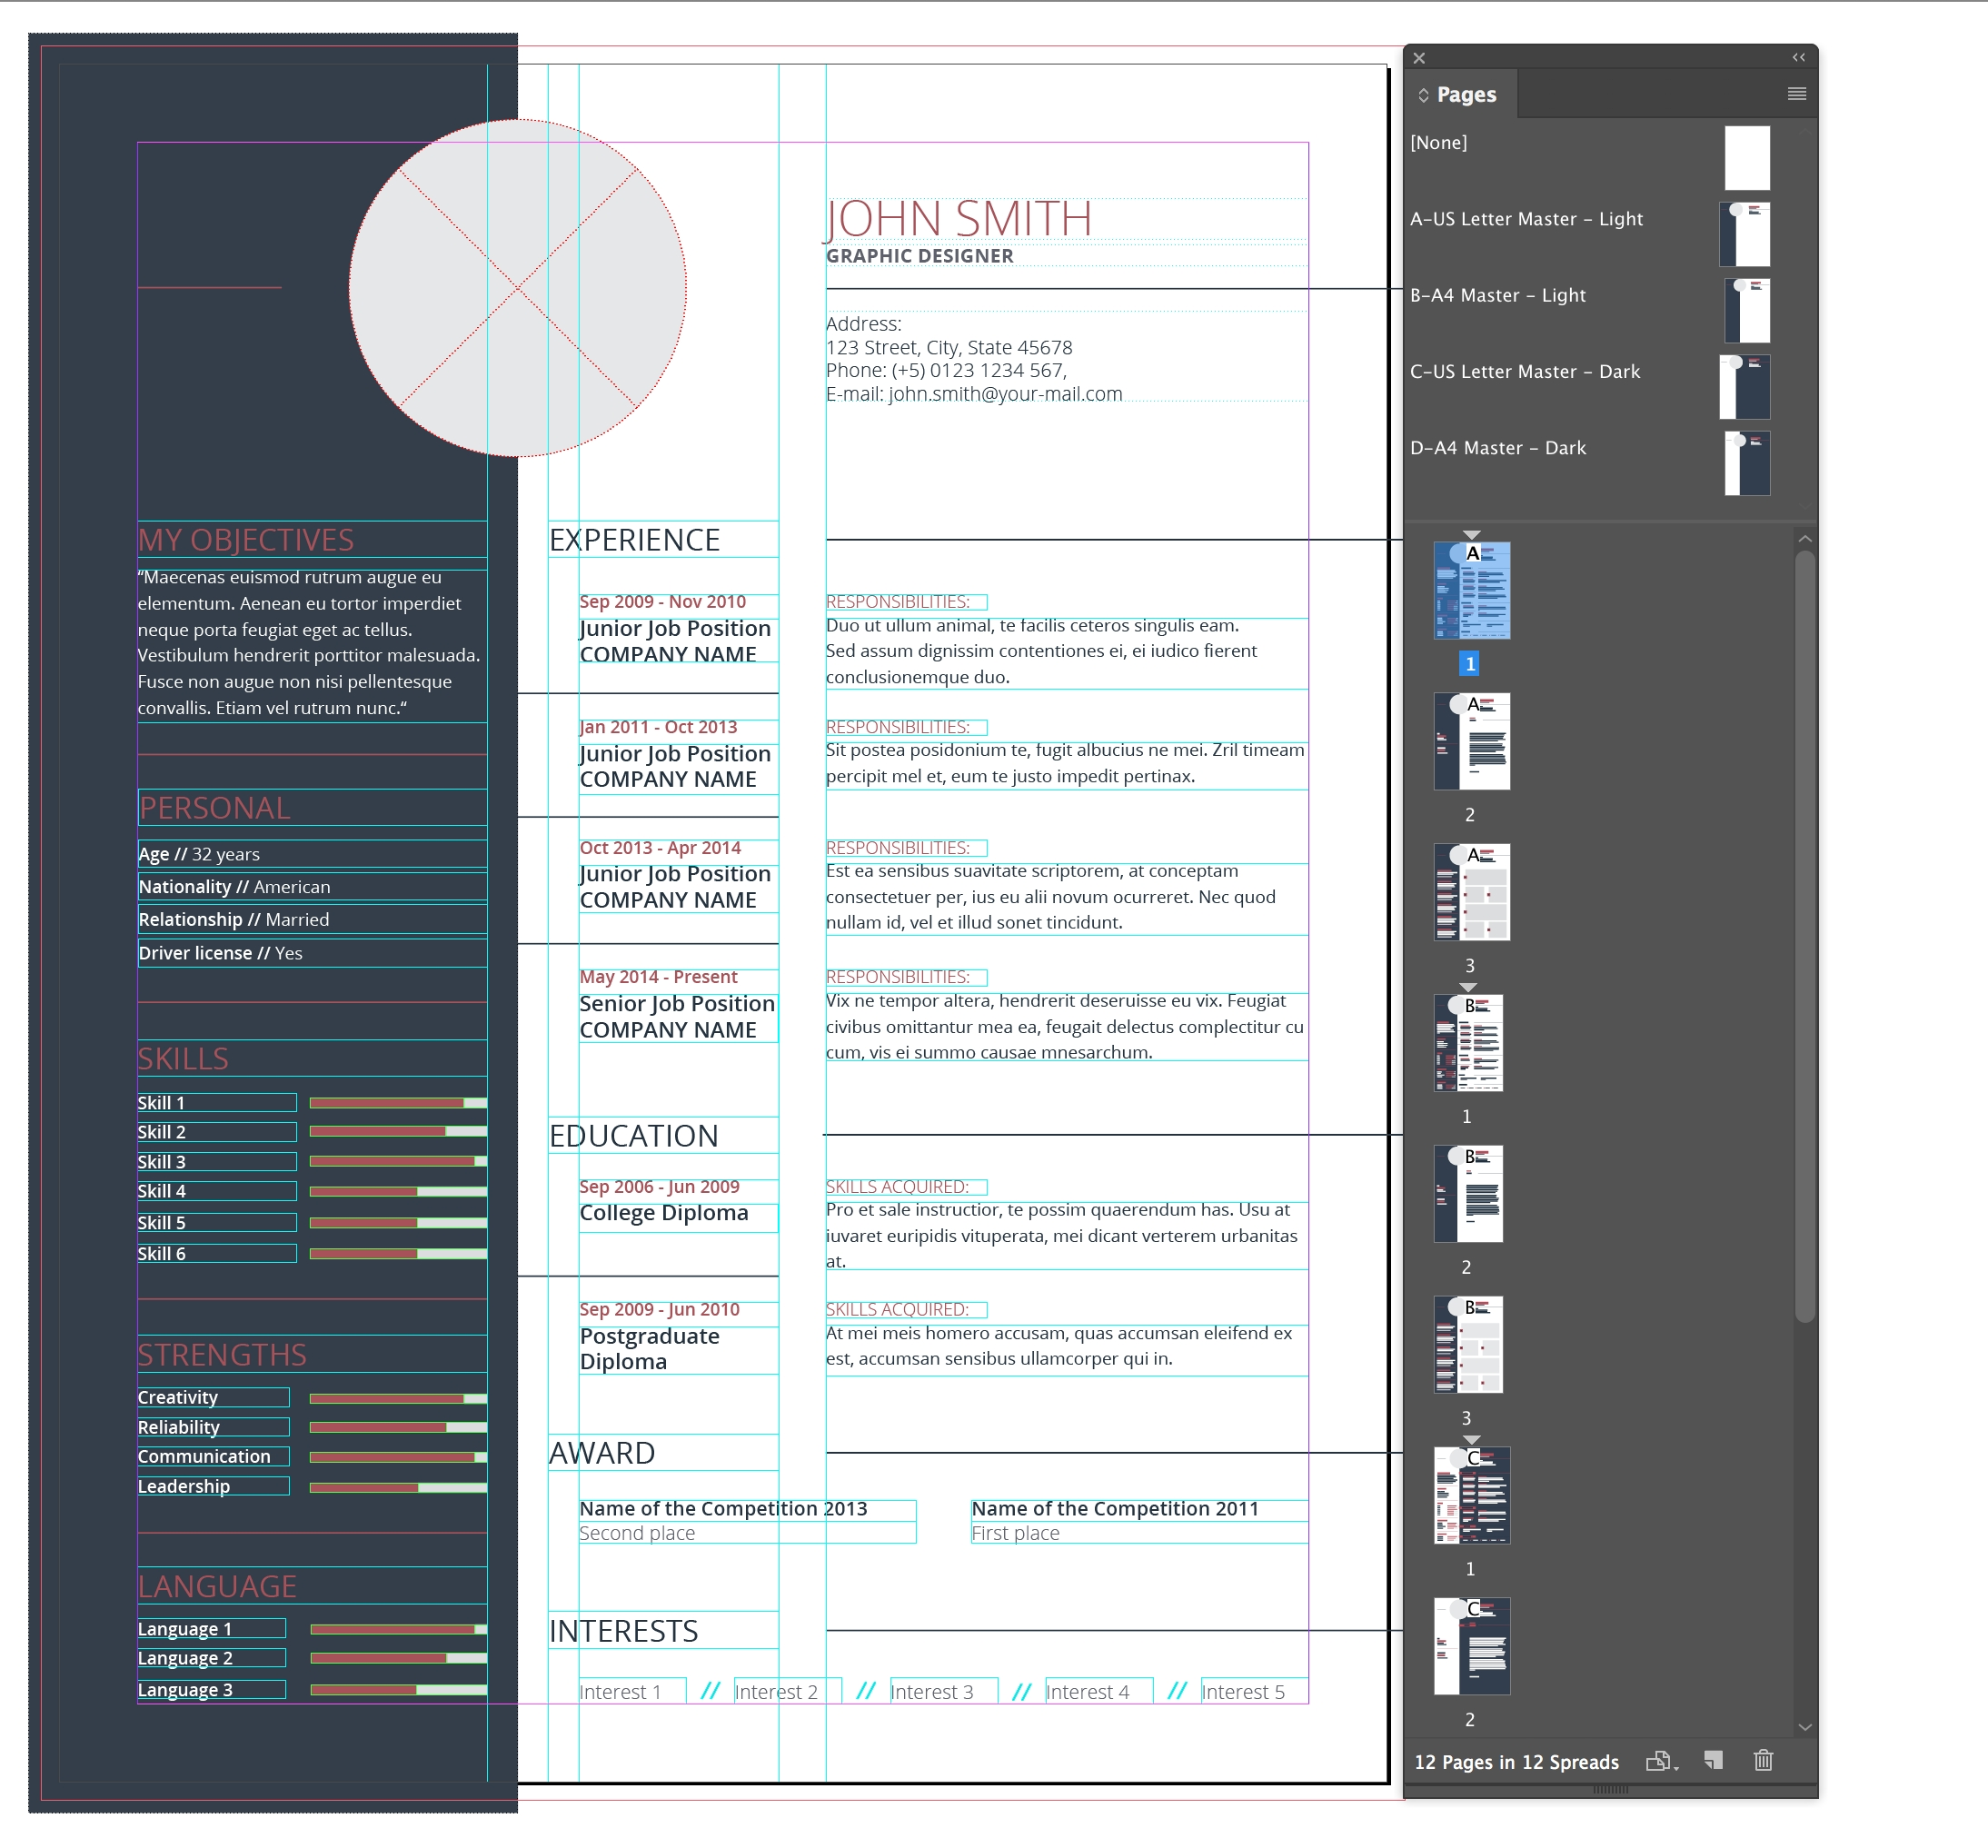 Adobe Indesign: I Can't Edit An Adobe Stock Cv Template